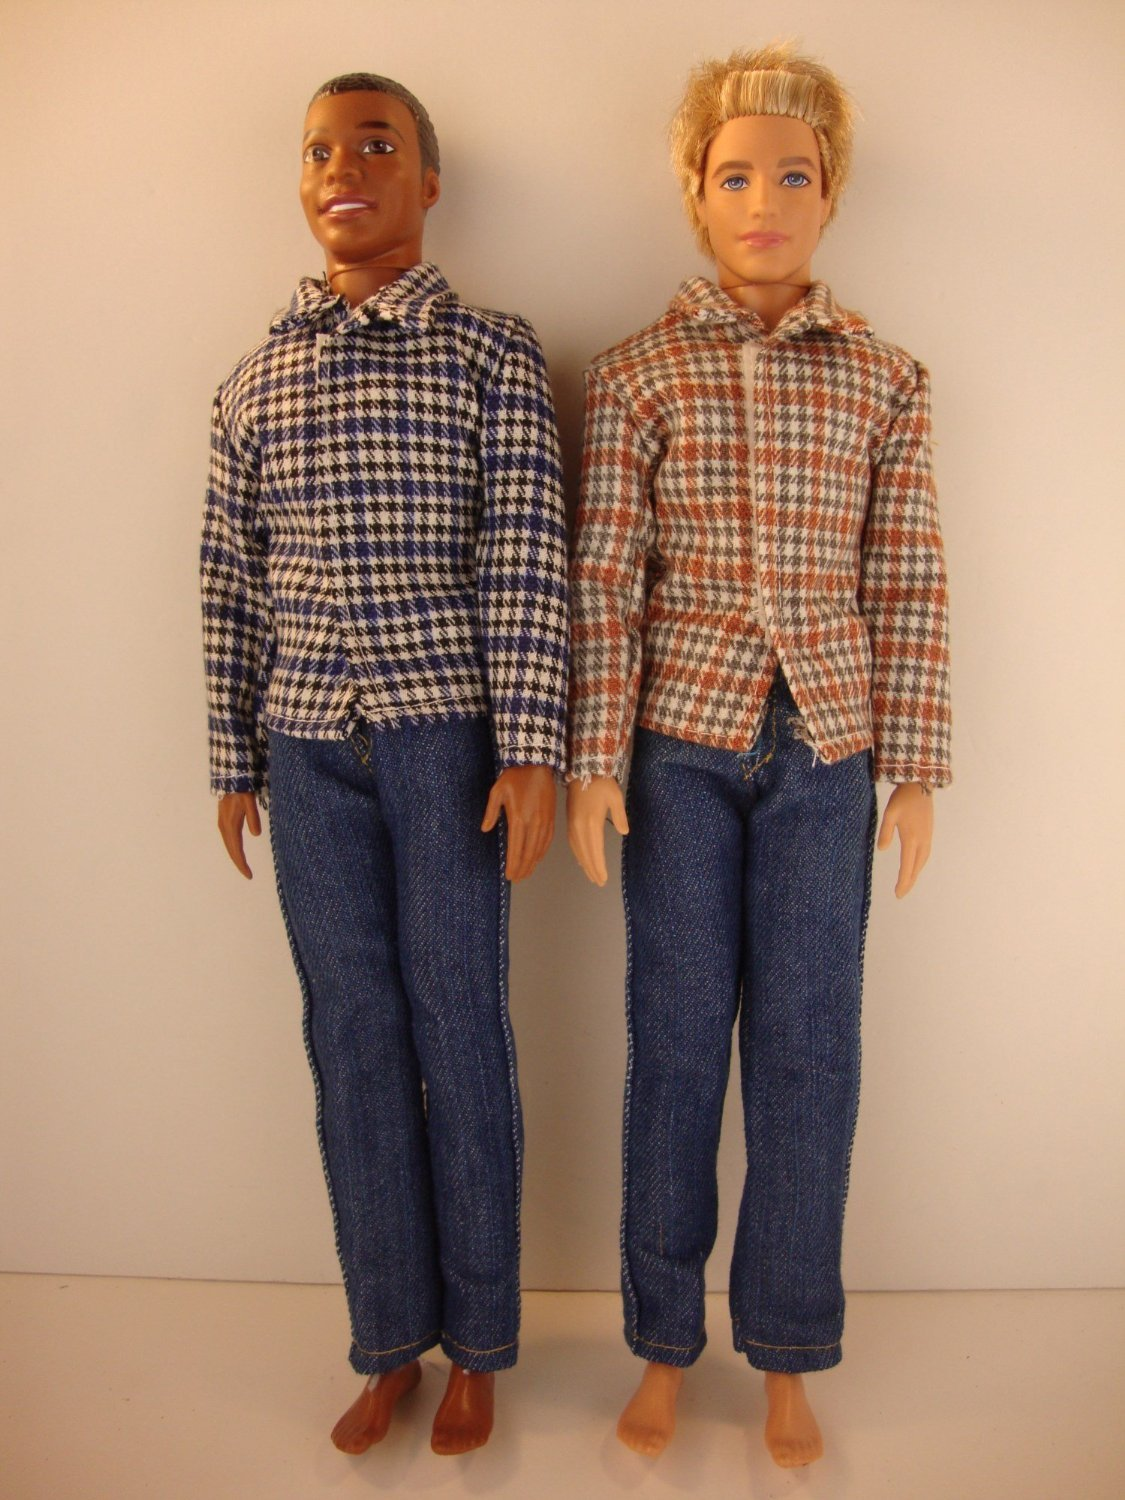 Amazon Set Of 2 Ken Doll Outfits Jeans With Flannel Shirts 4